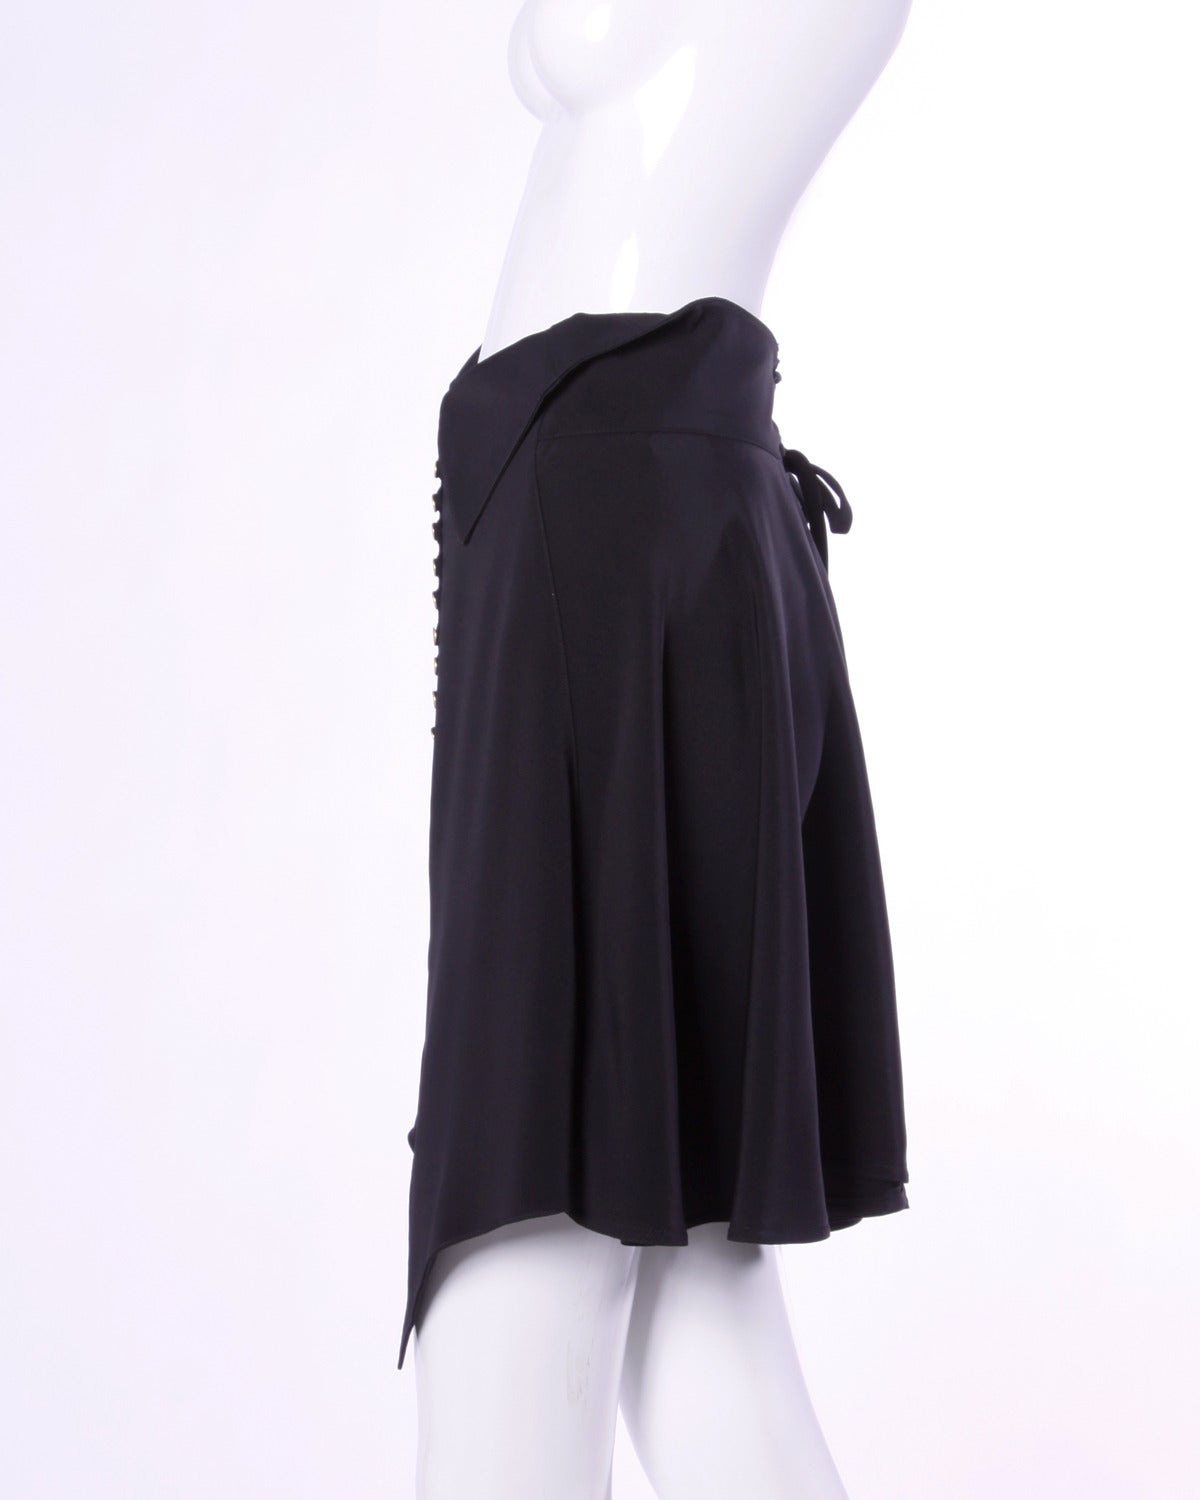 Claude Montana Vintage Black Avant Garde Lace-Up Skirt, 1990s  In Excellent Condition For Sale In Sparks, NV